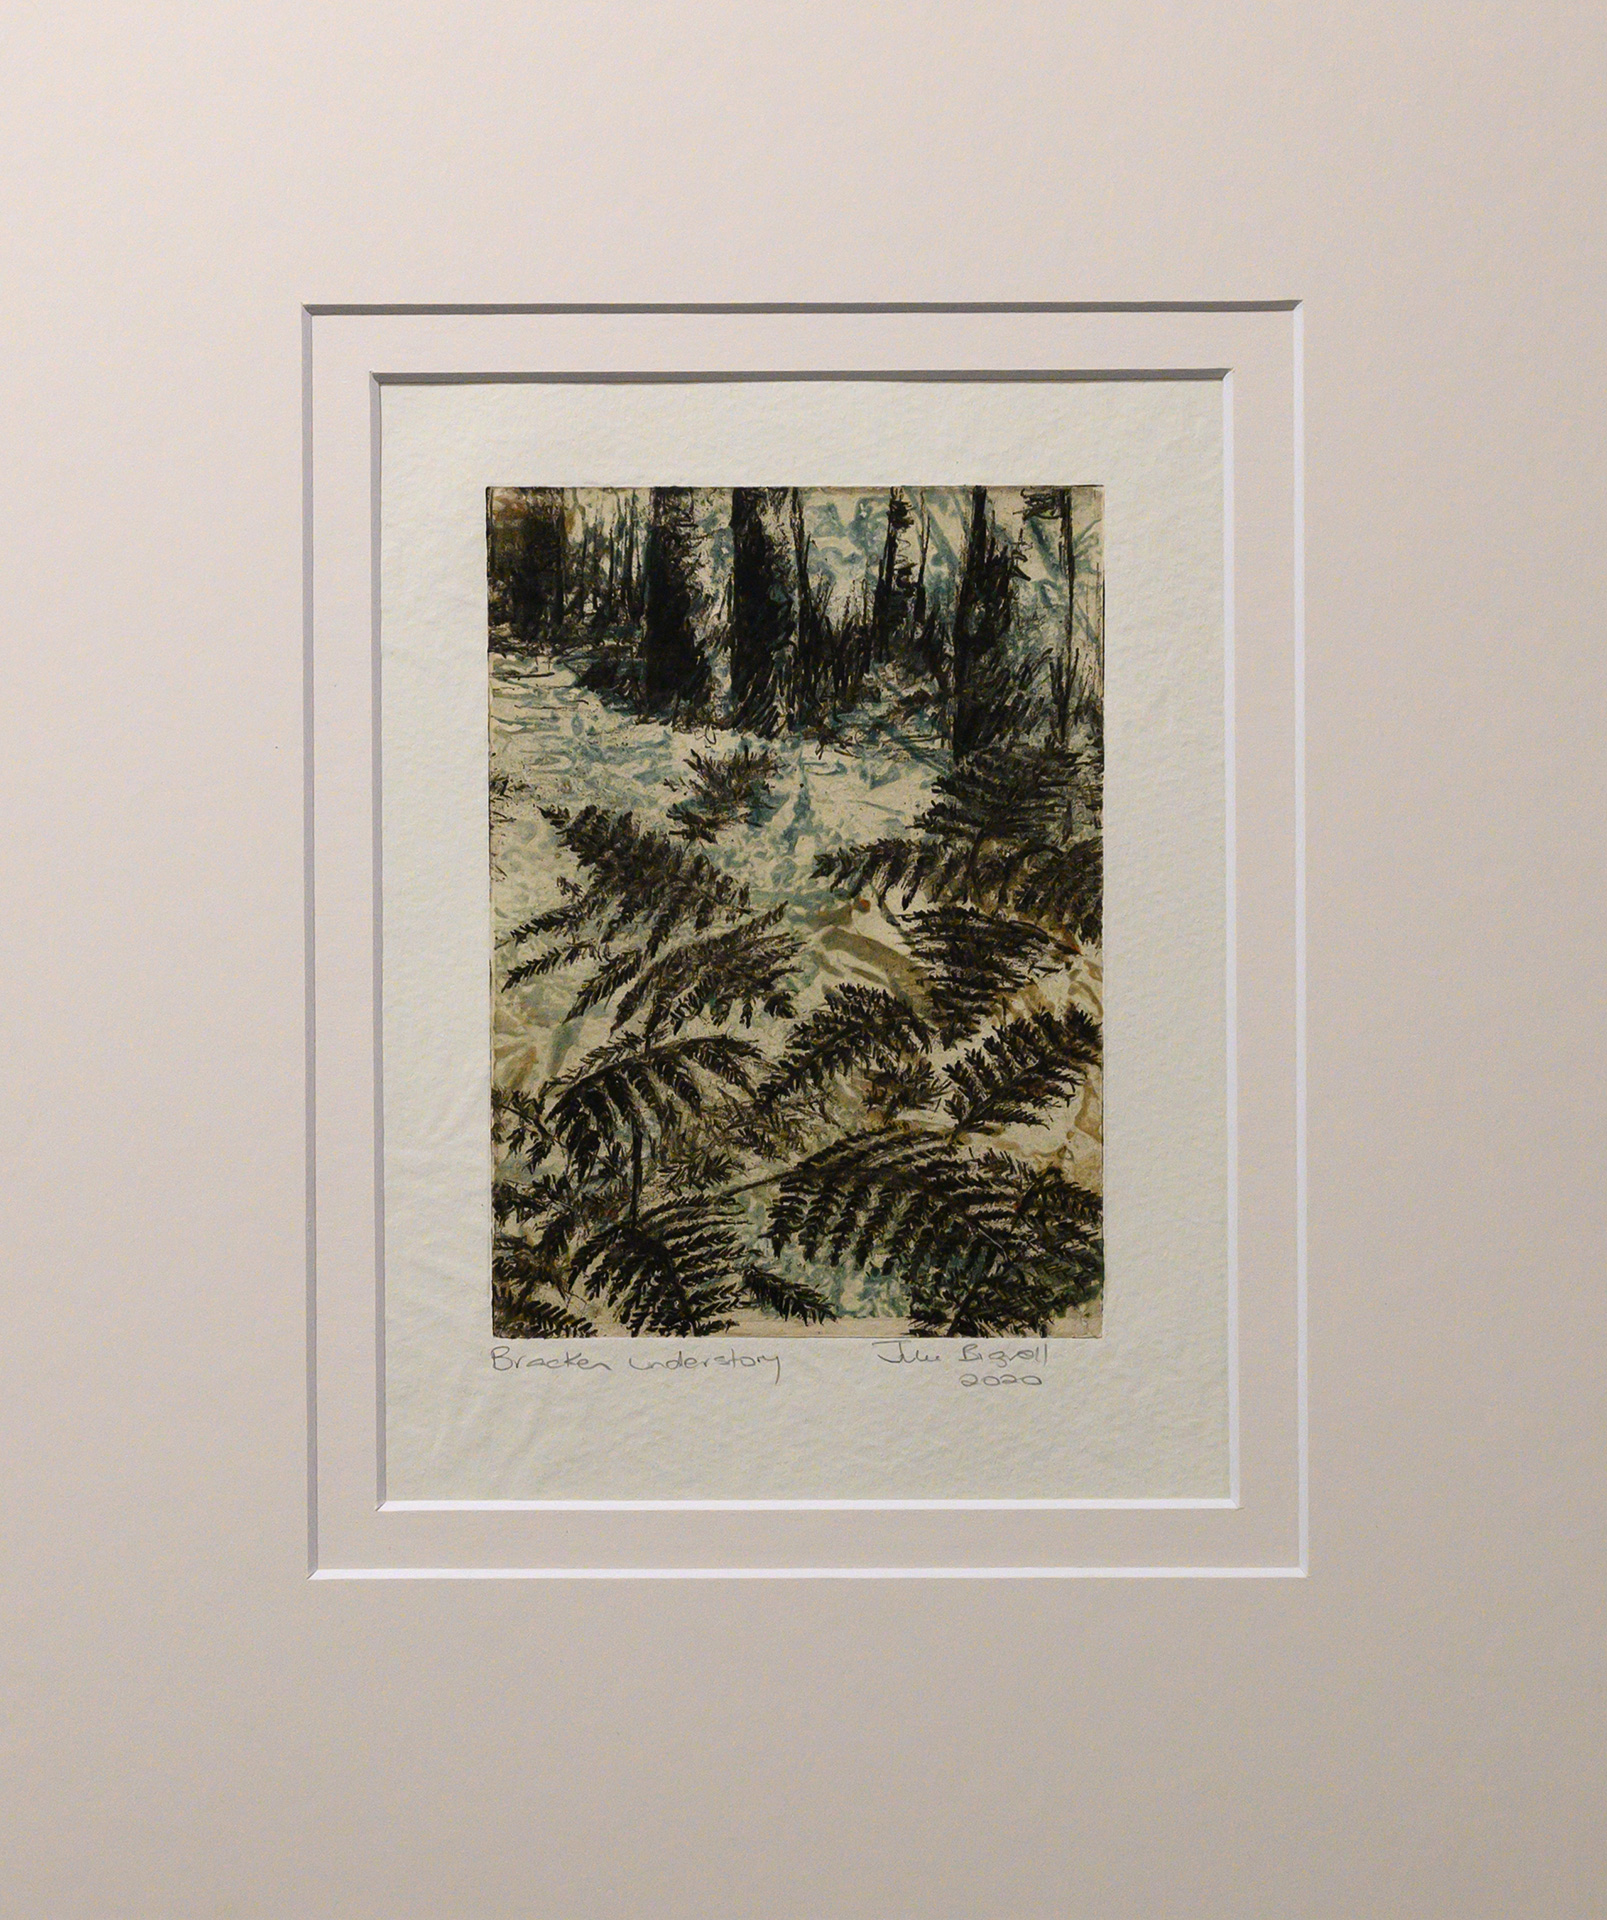 Unframed artwork by Julie Bignell of bracken fern in the foreground, leading to the base of tree trunks in the background